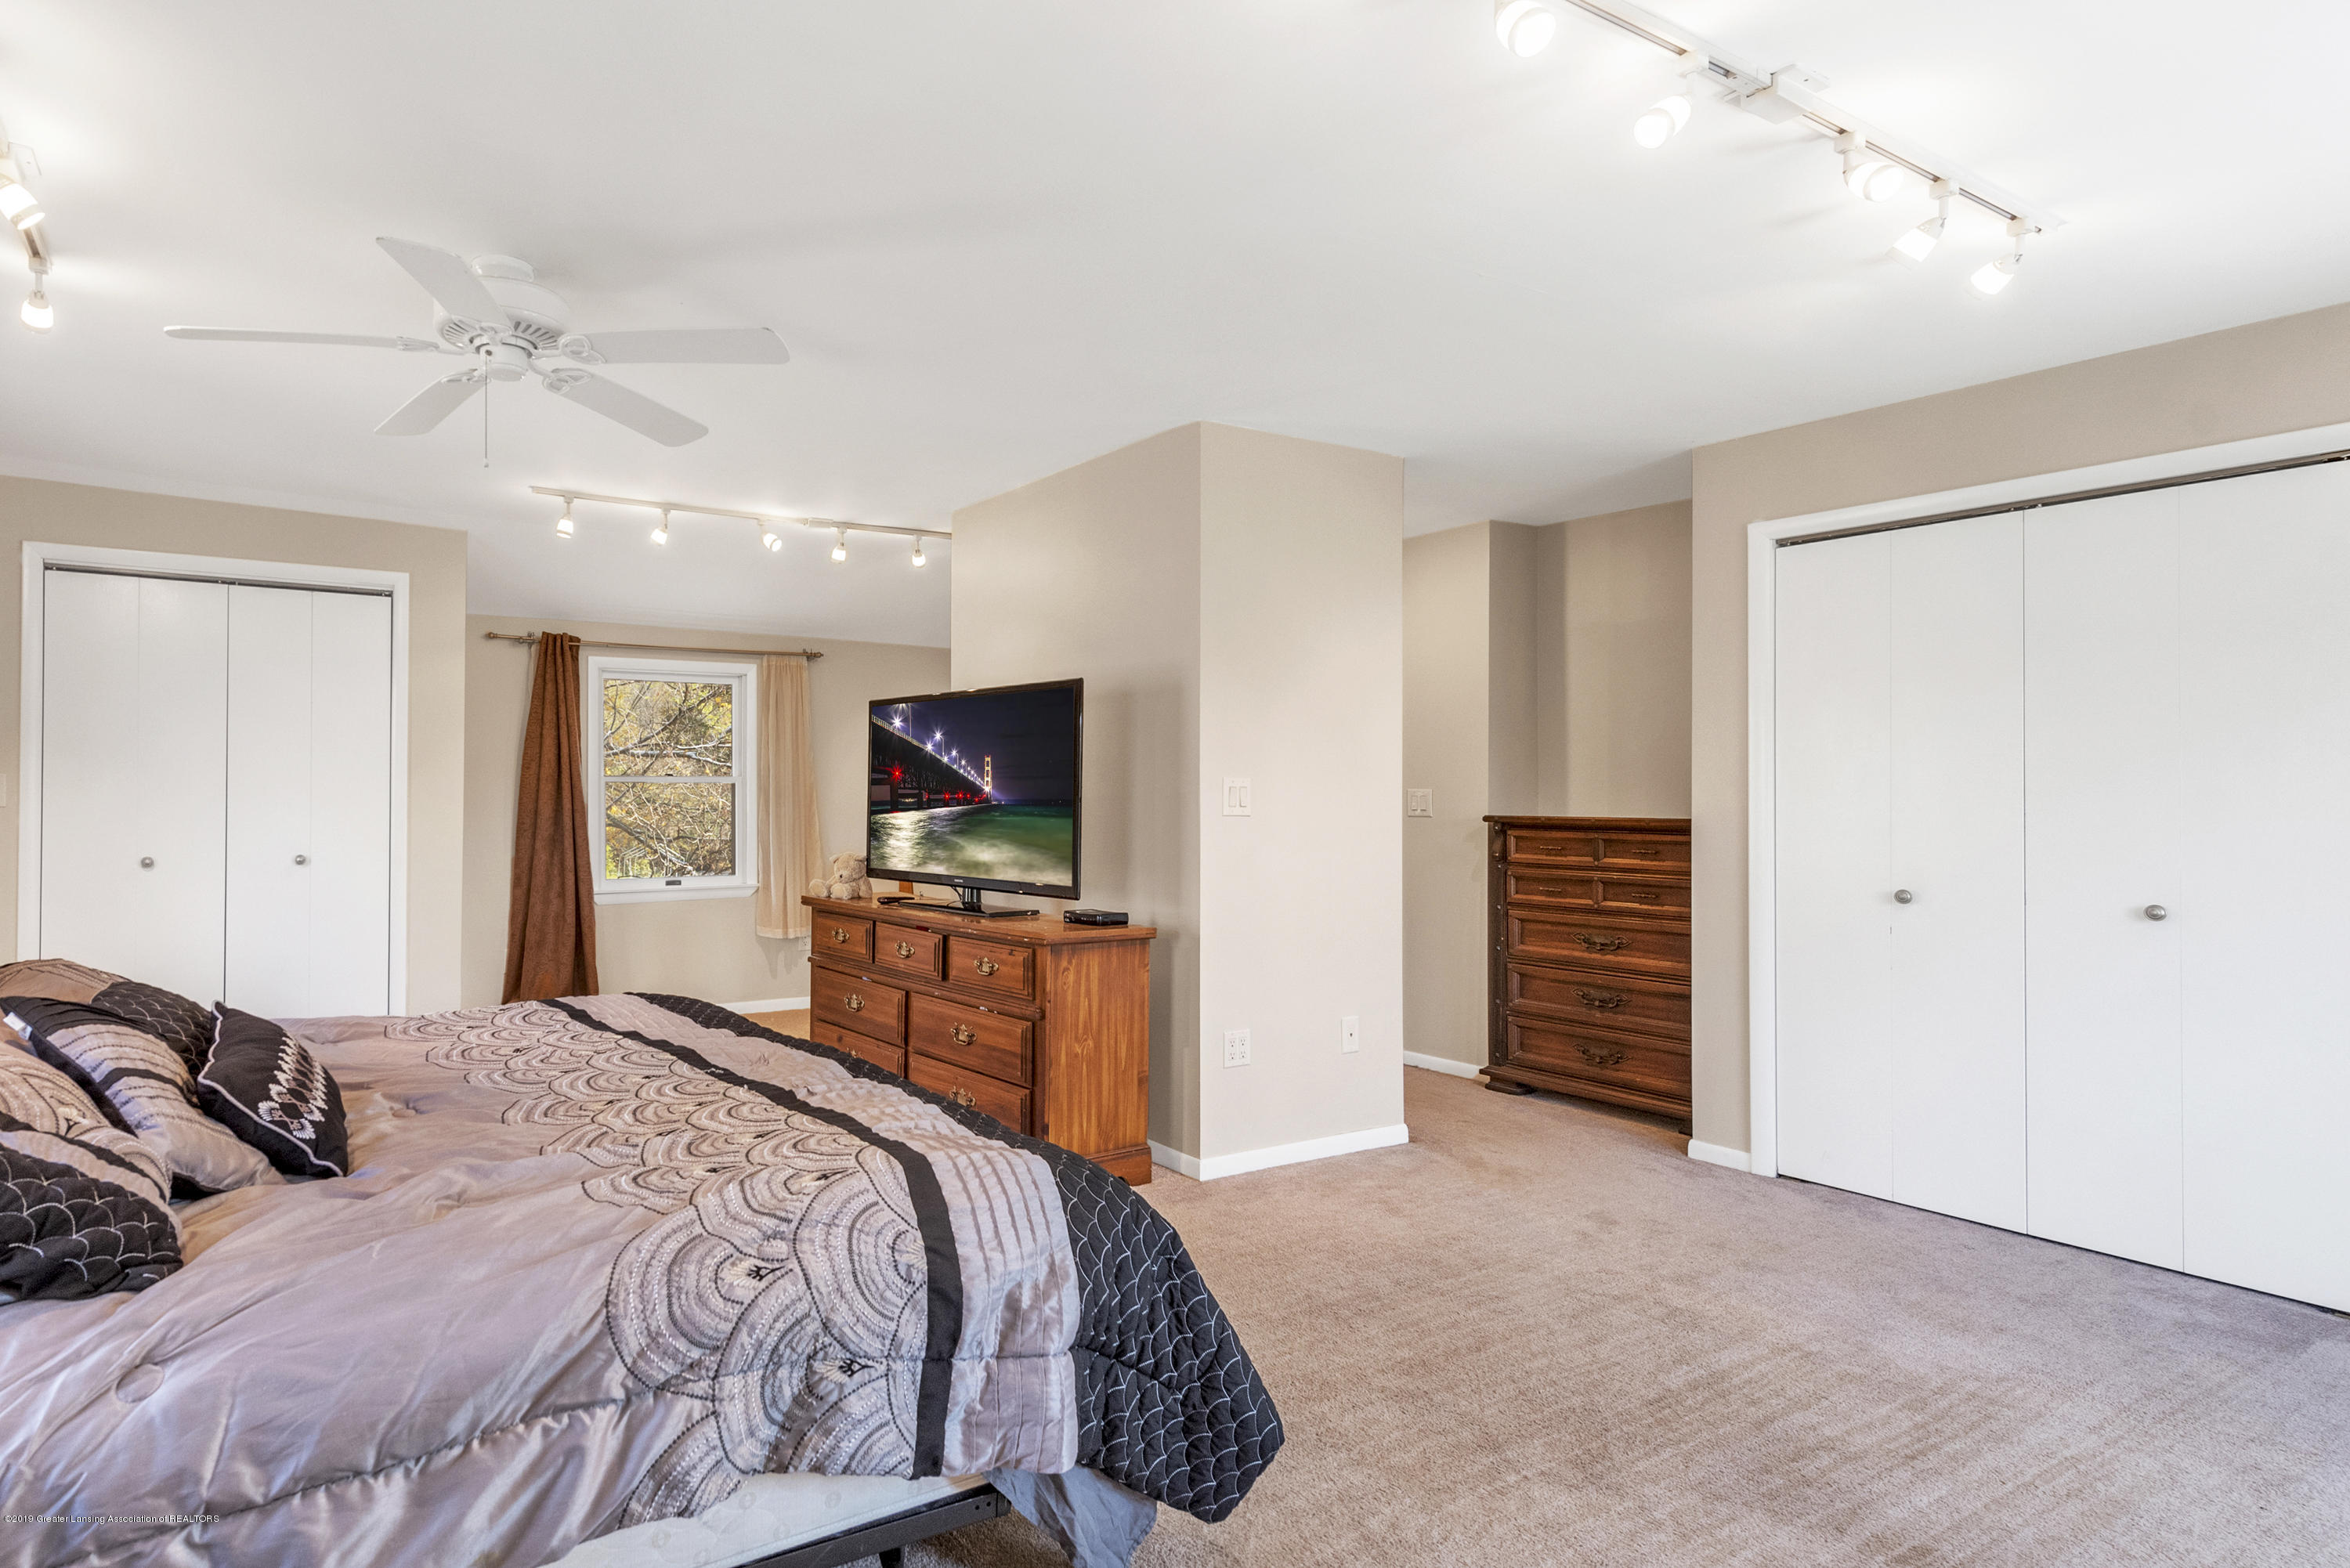 8700 Abbey Rd - 8700-Abbey-Rd-WindowStill-Real-Estate-Ph - 20